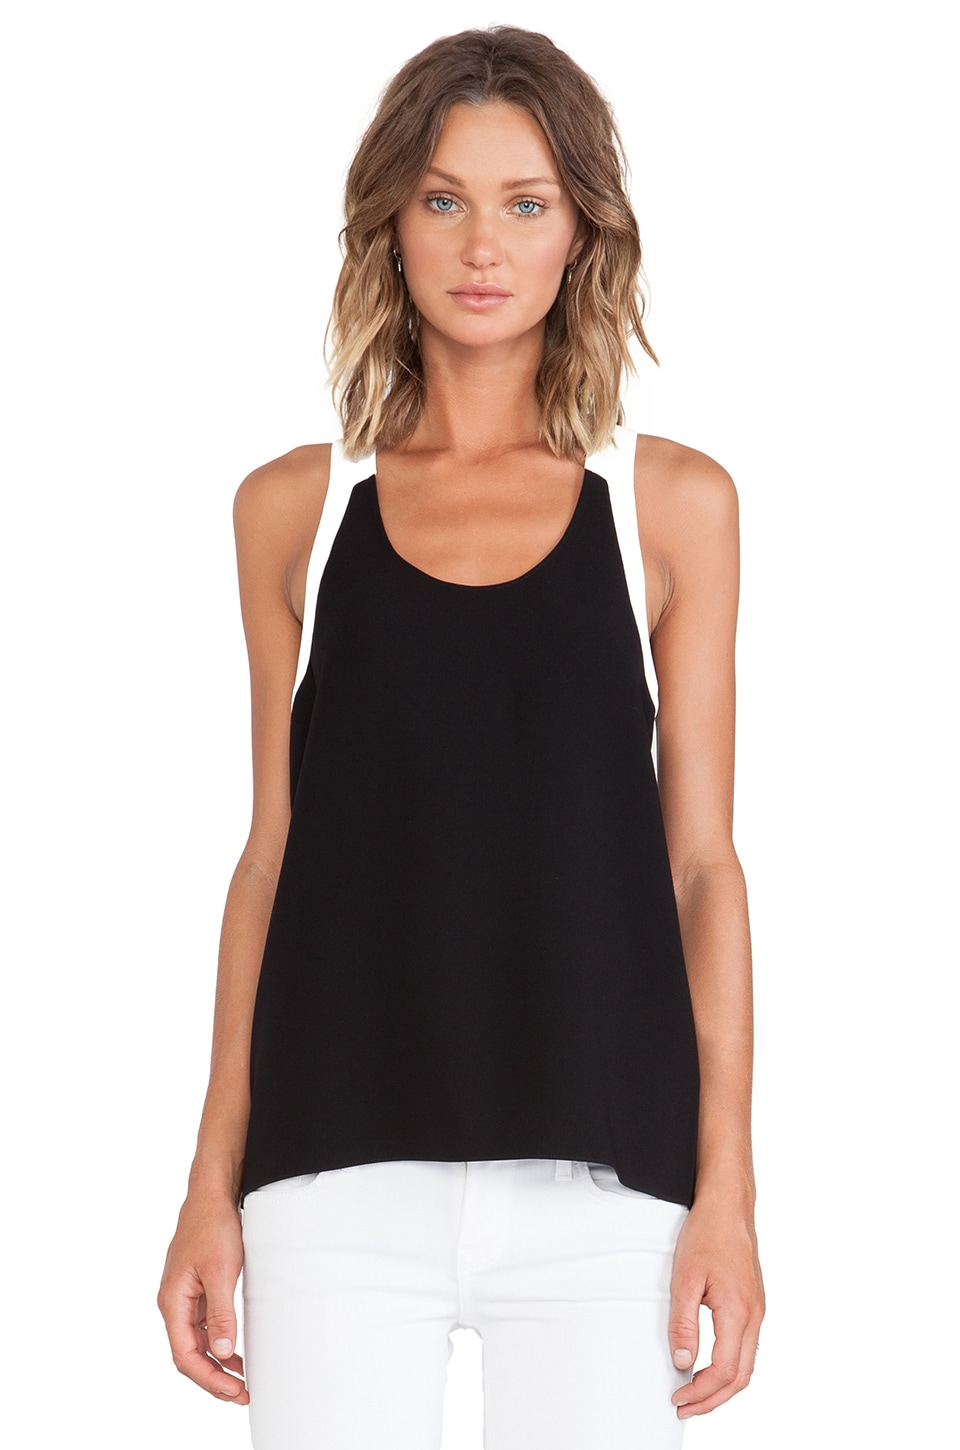 Tibi Arden Crepe Colorblock Tank in Black Multi